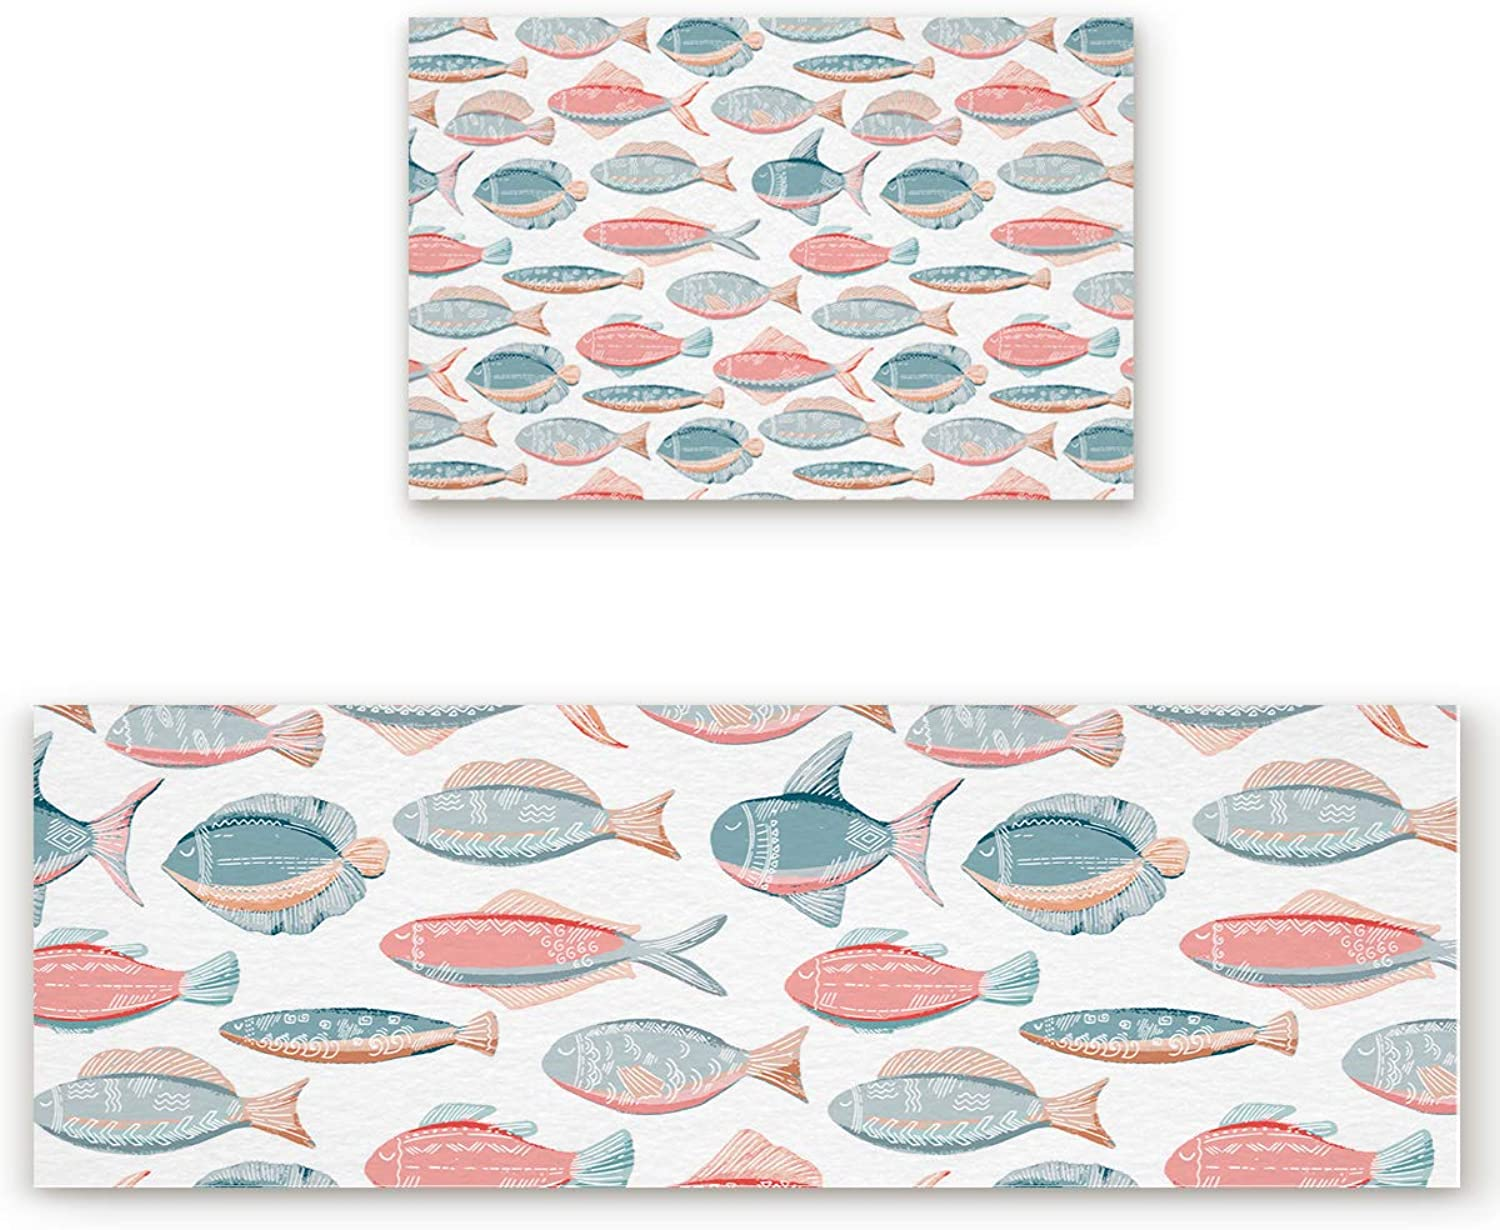 2 Piece Non-Slip Kitchen Bathroom Entrance Mat Absorbent Durable Floor Doormat Runner Rug Set - Japanese Hand-Painted Fishes